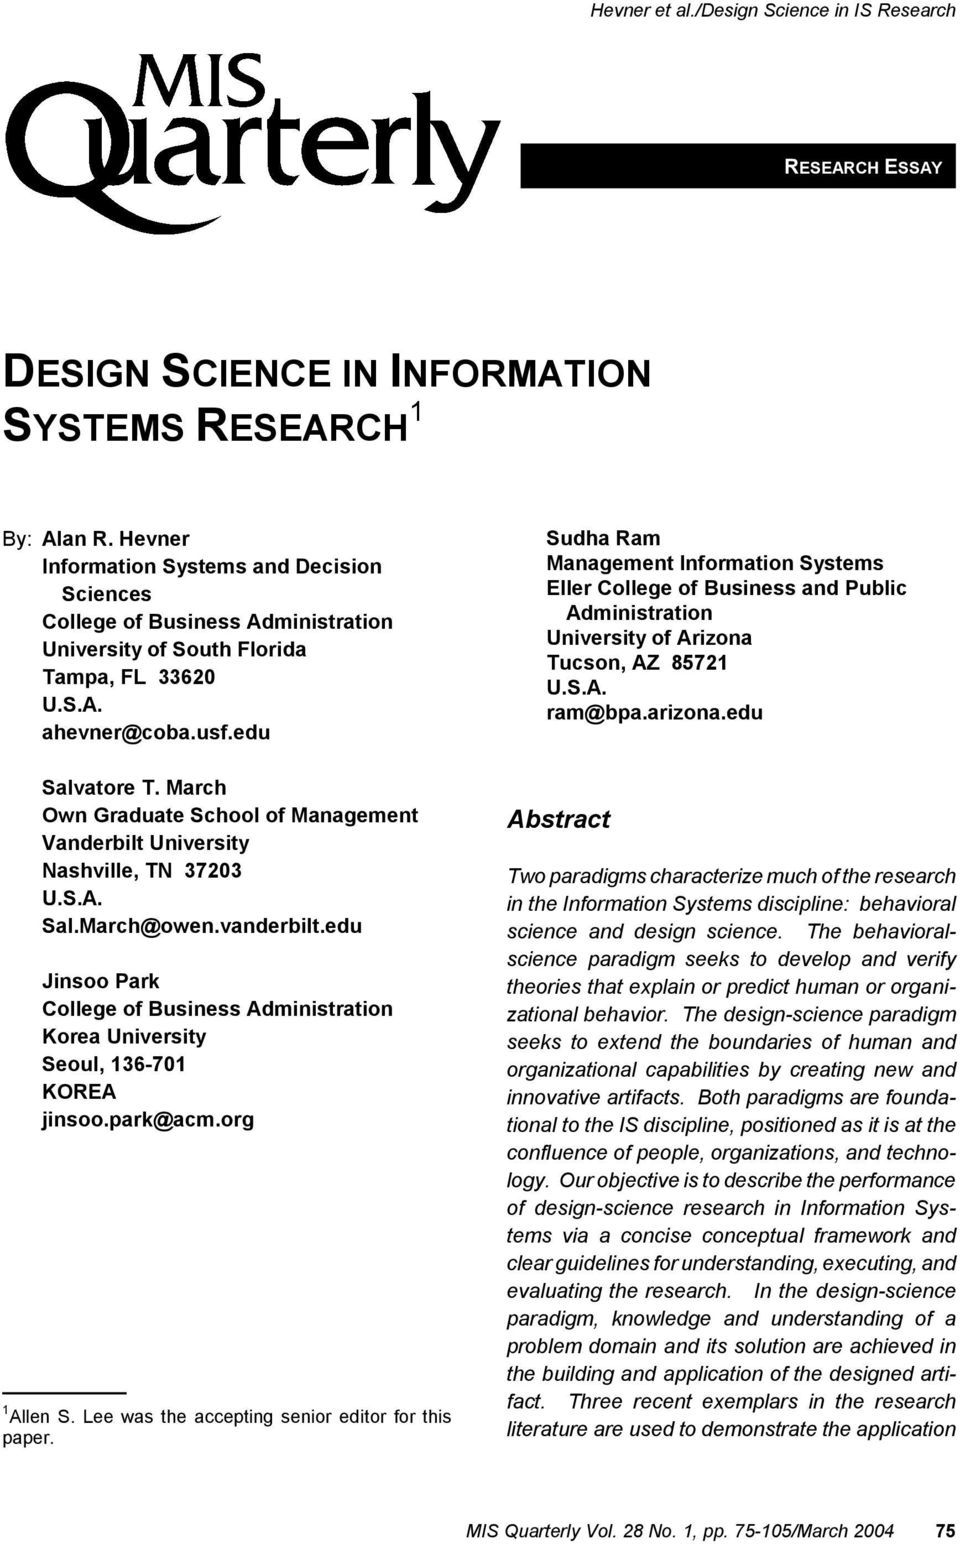 Design Science In Information Systems Research 1 Pdf Free Download